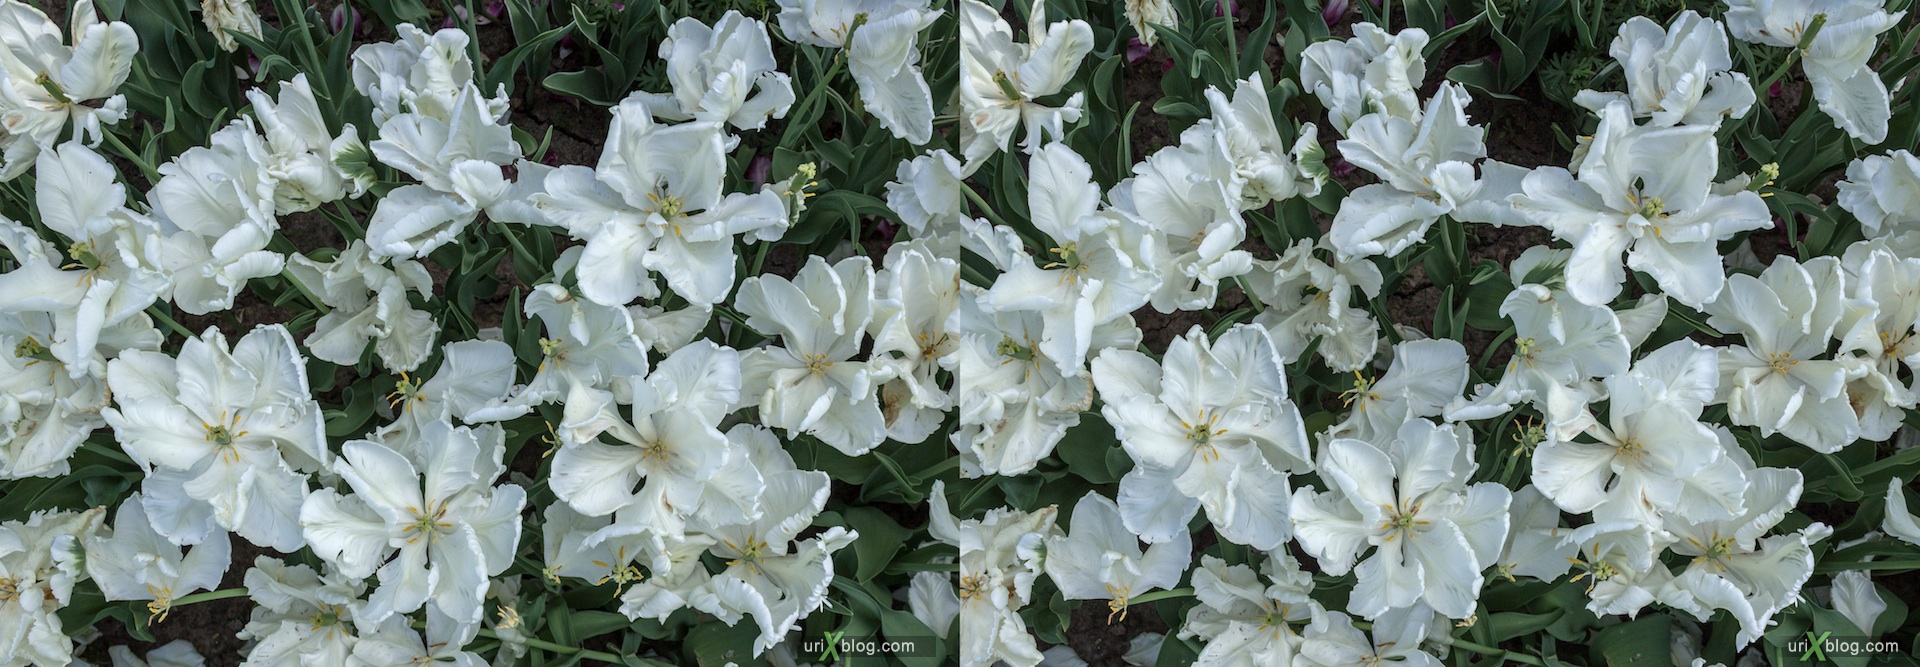 2013, white, tulips, field, flower, grass, park, field, Moscow, Russia, spring, 3D, stereo pair, cross-eyed, crossview, cross view stereo pair, stereoscopic